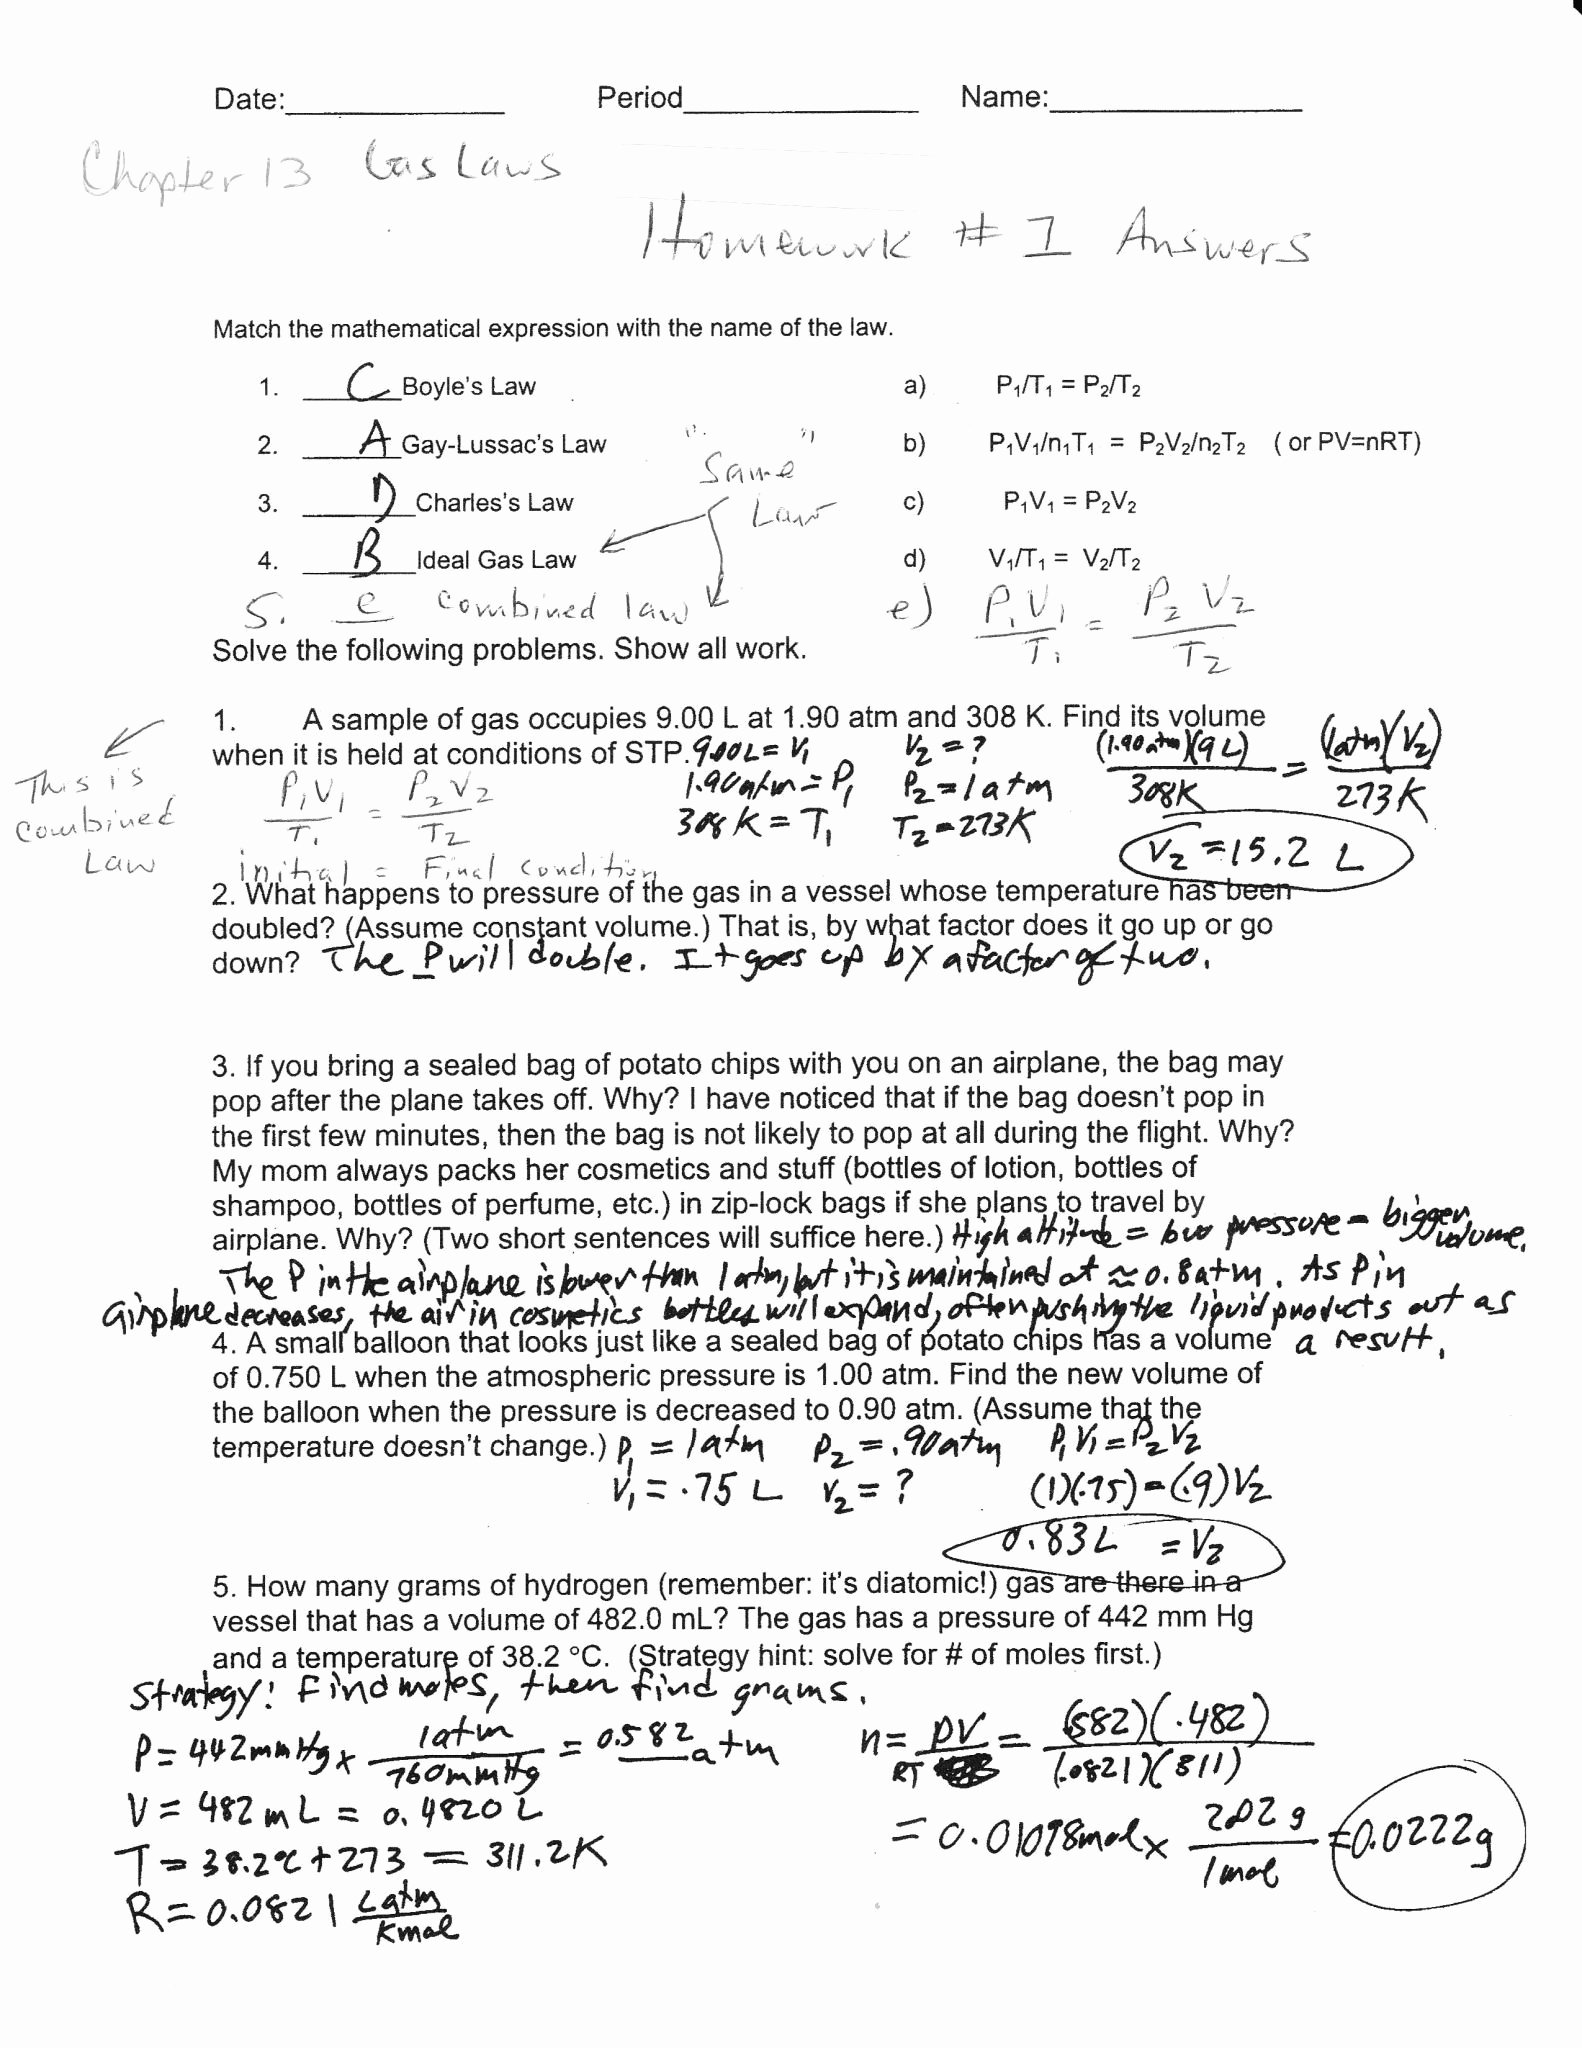 Metric Conversion Worksheet Chemistry Best Of Chemistry Metric Conversion Worksheet